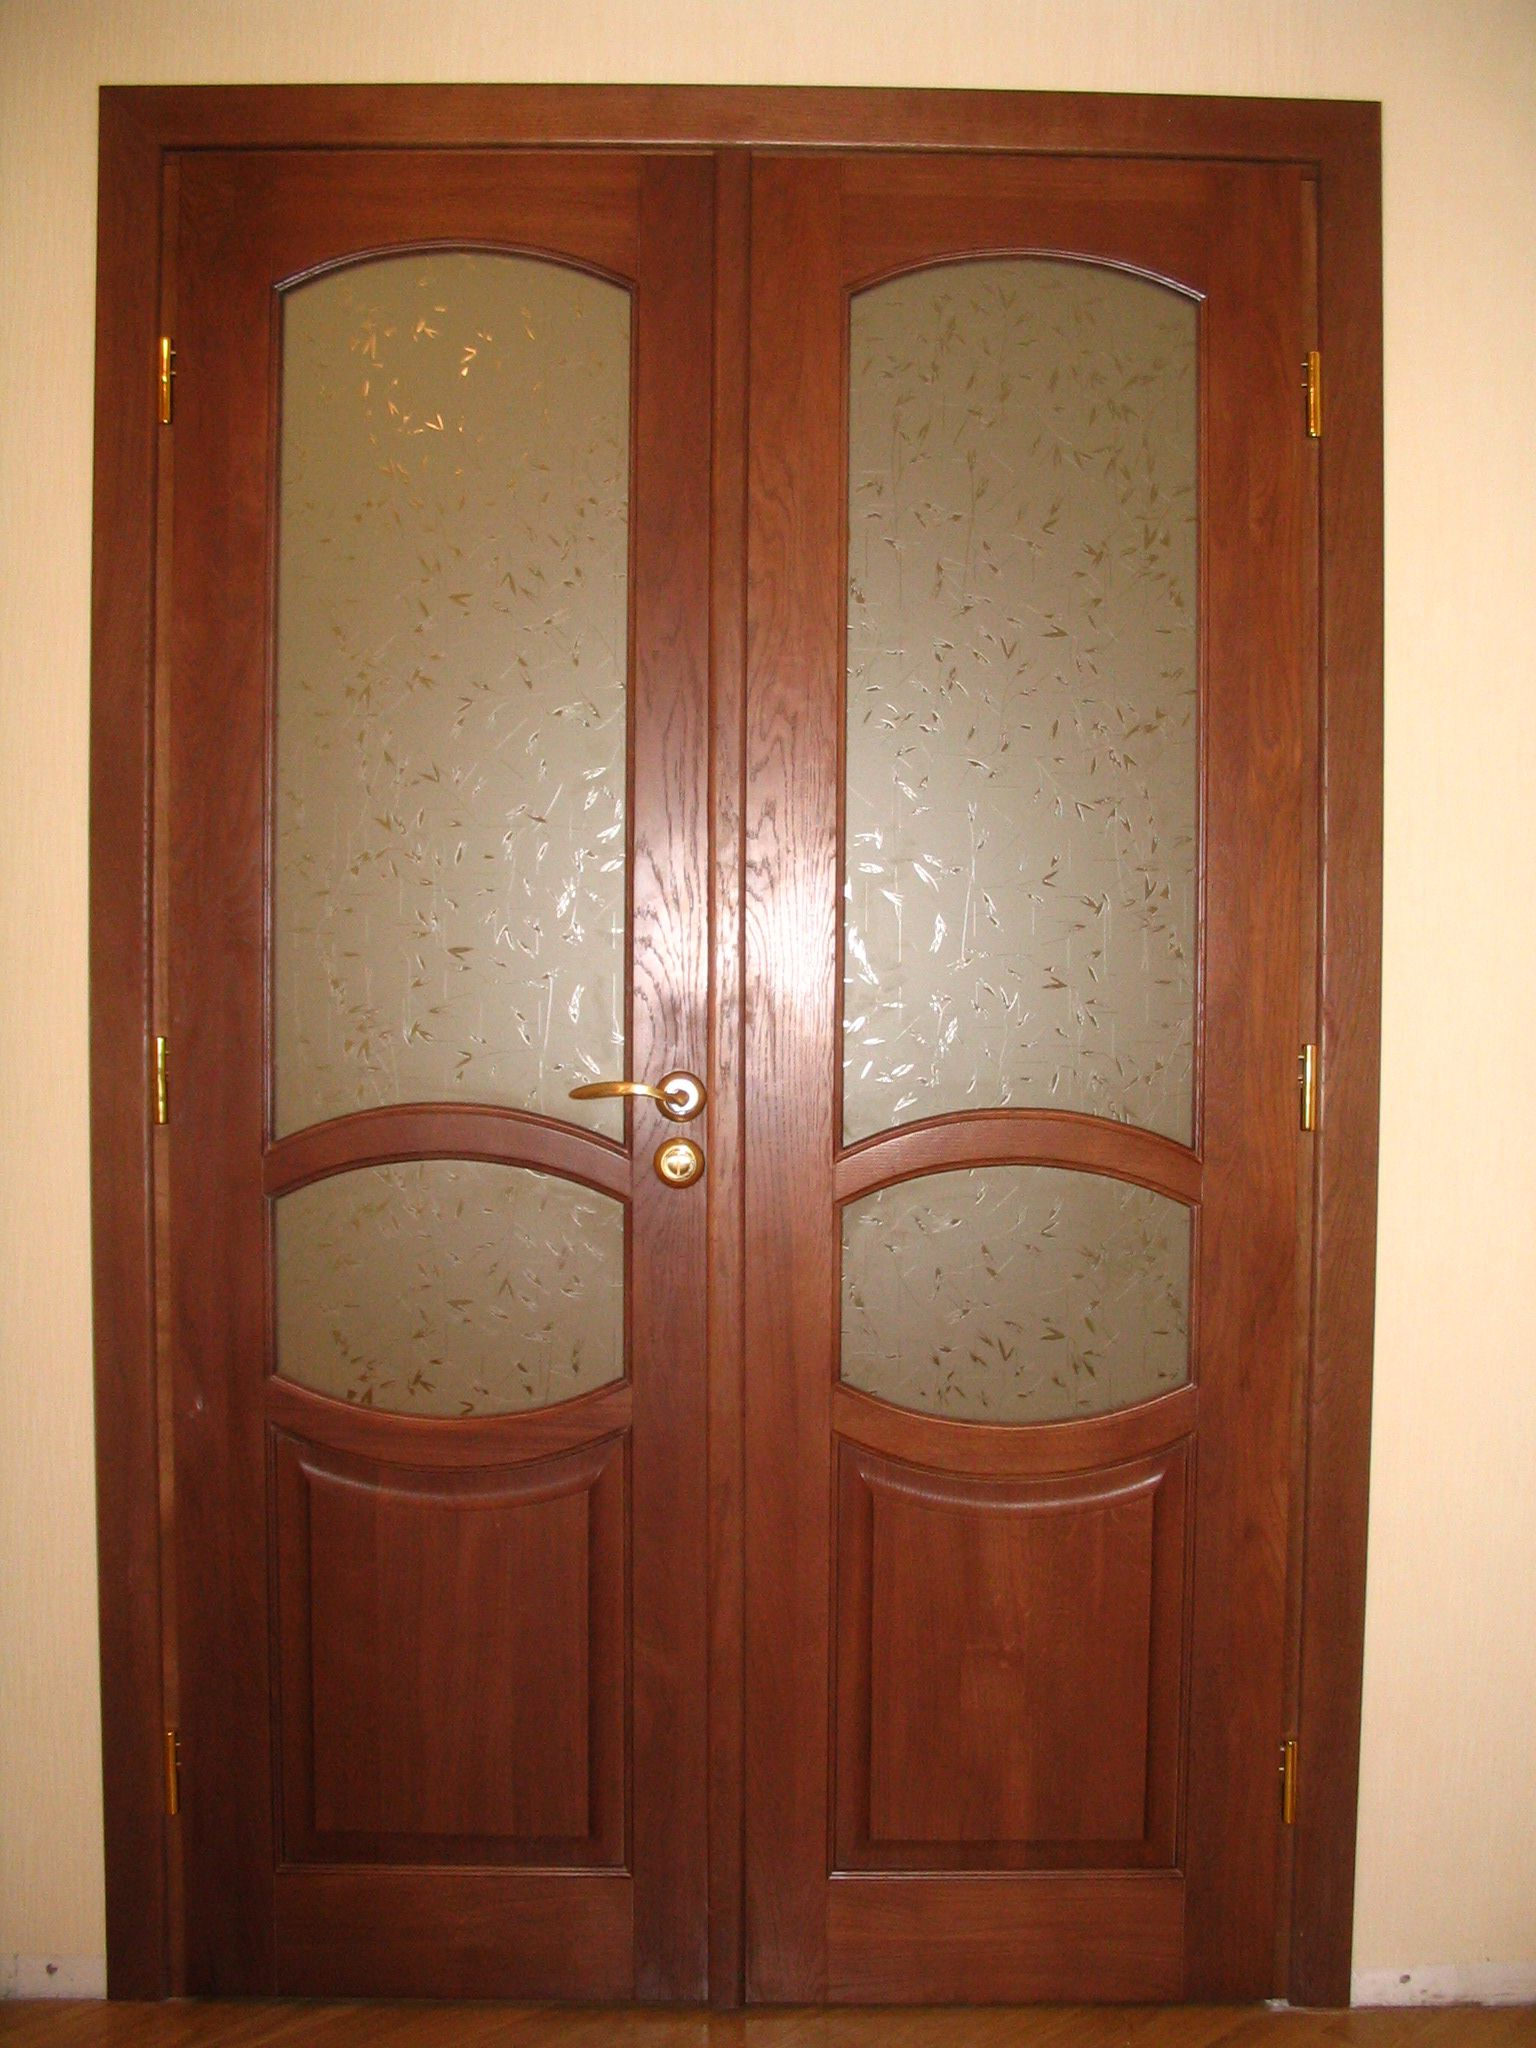 Dark brown masonite two-leaf door with glass